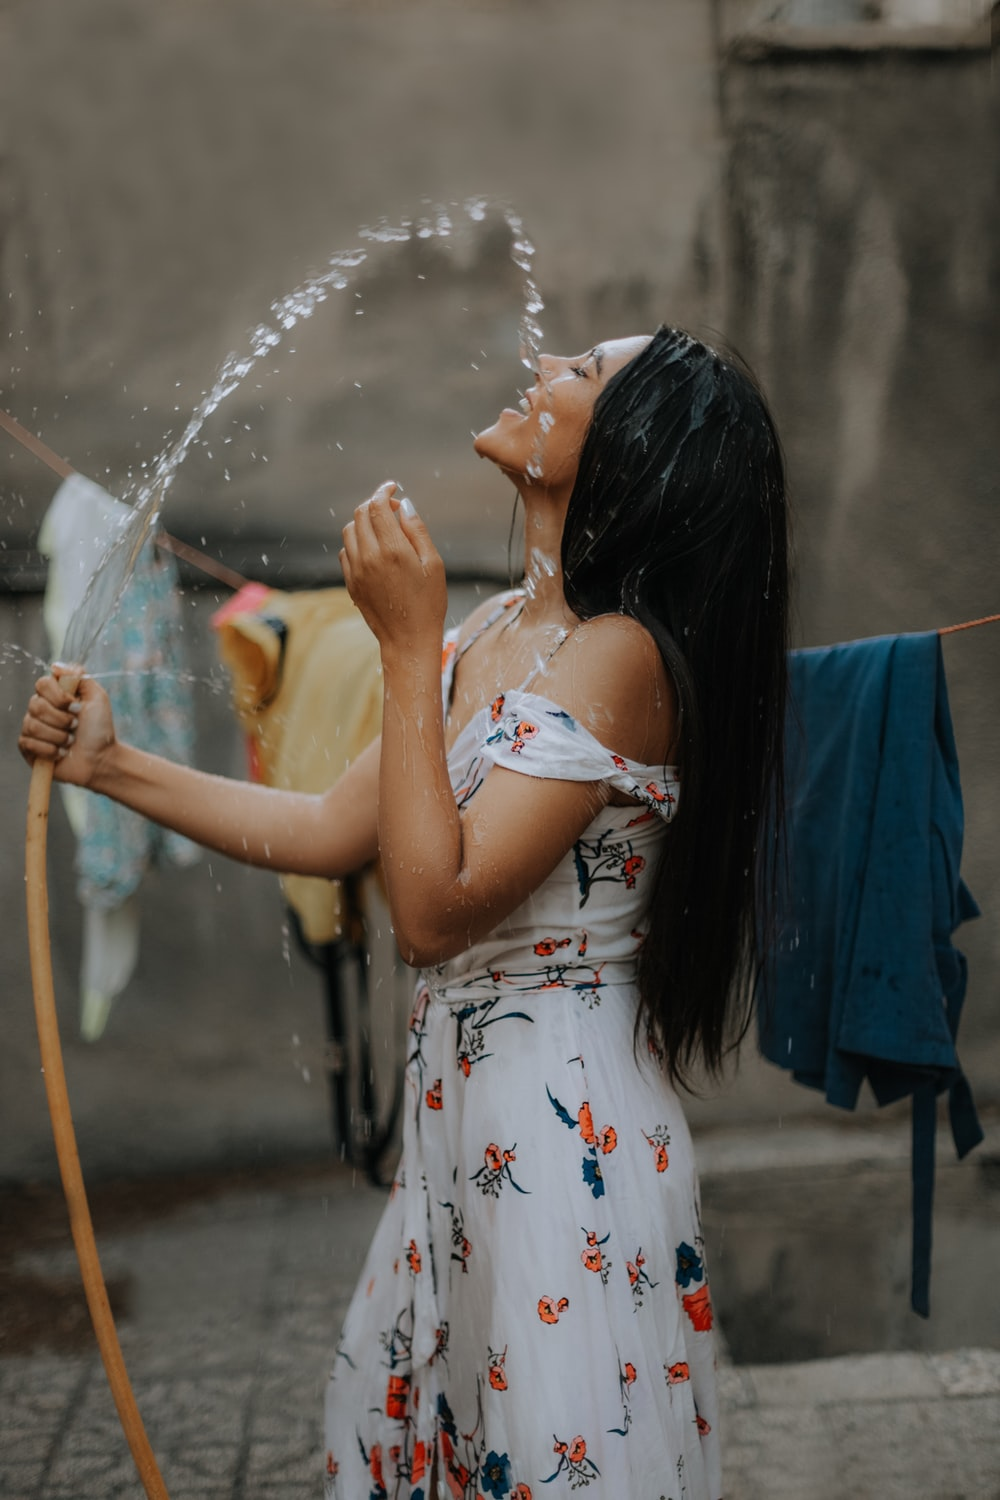 woman holding water hose